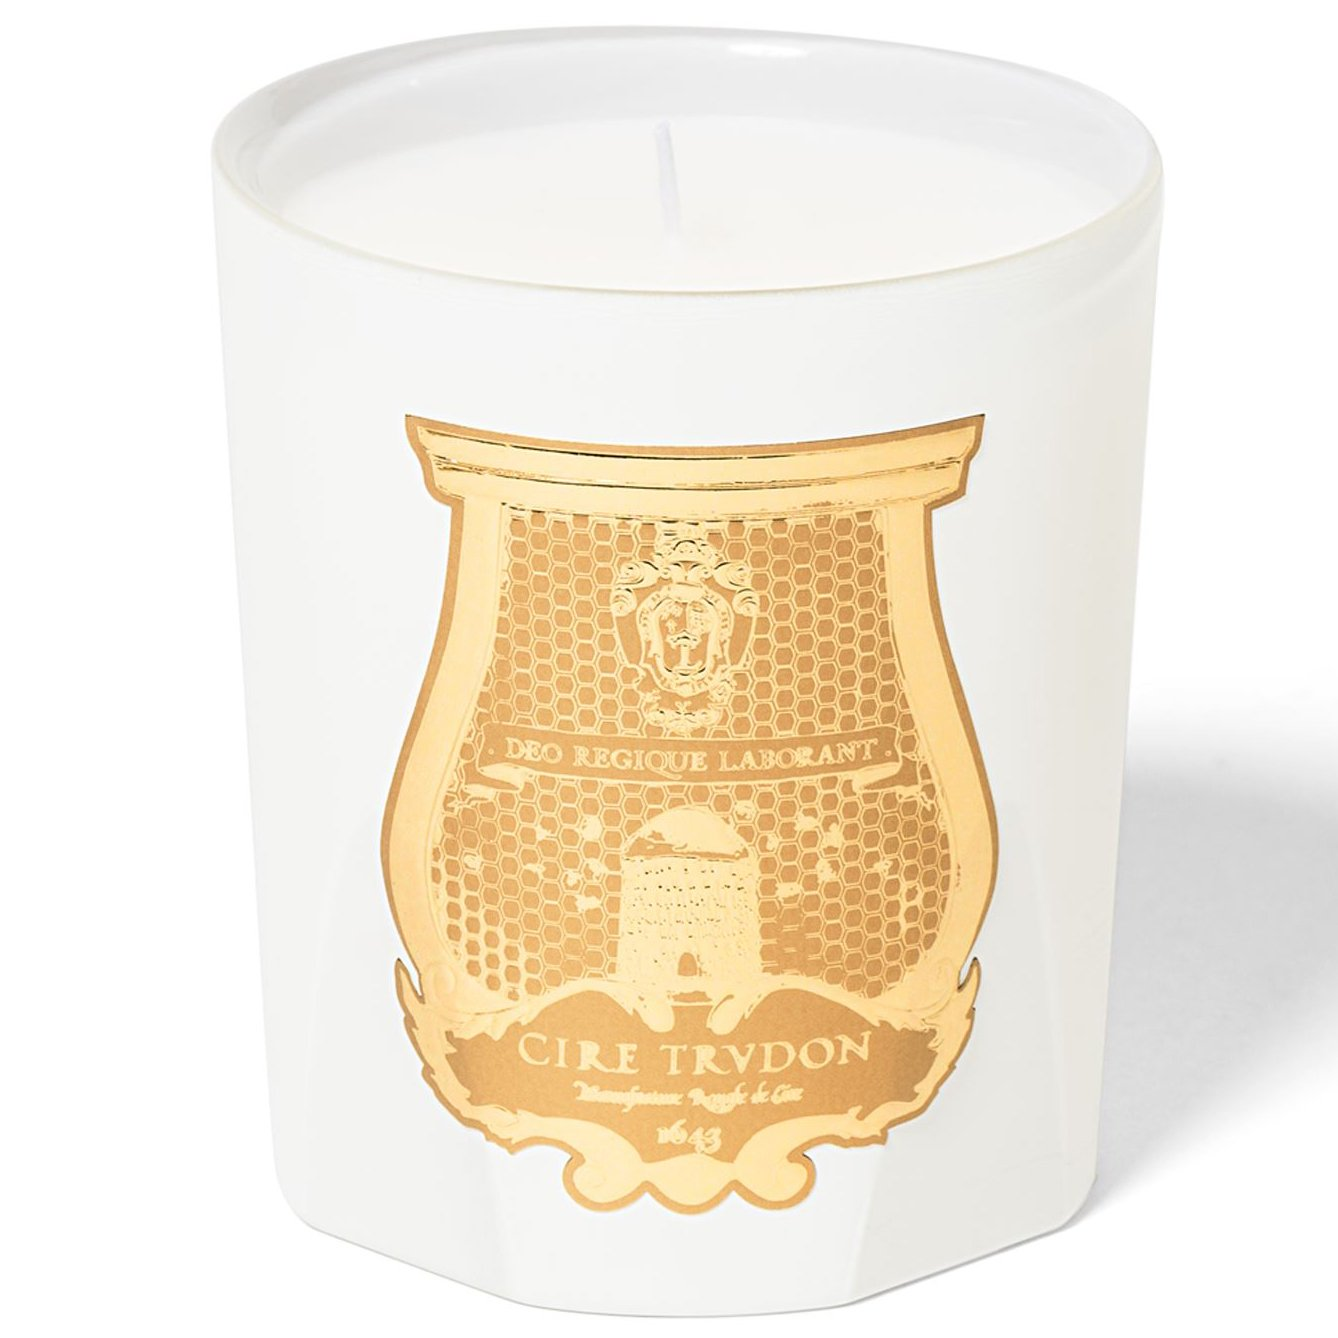 Cire Trudon Limited Edition SIX Candle - 270 g